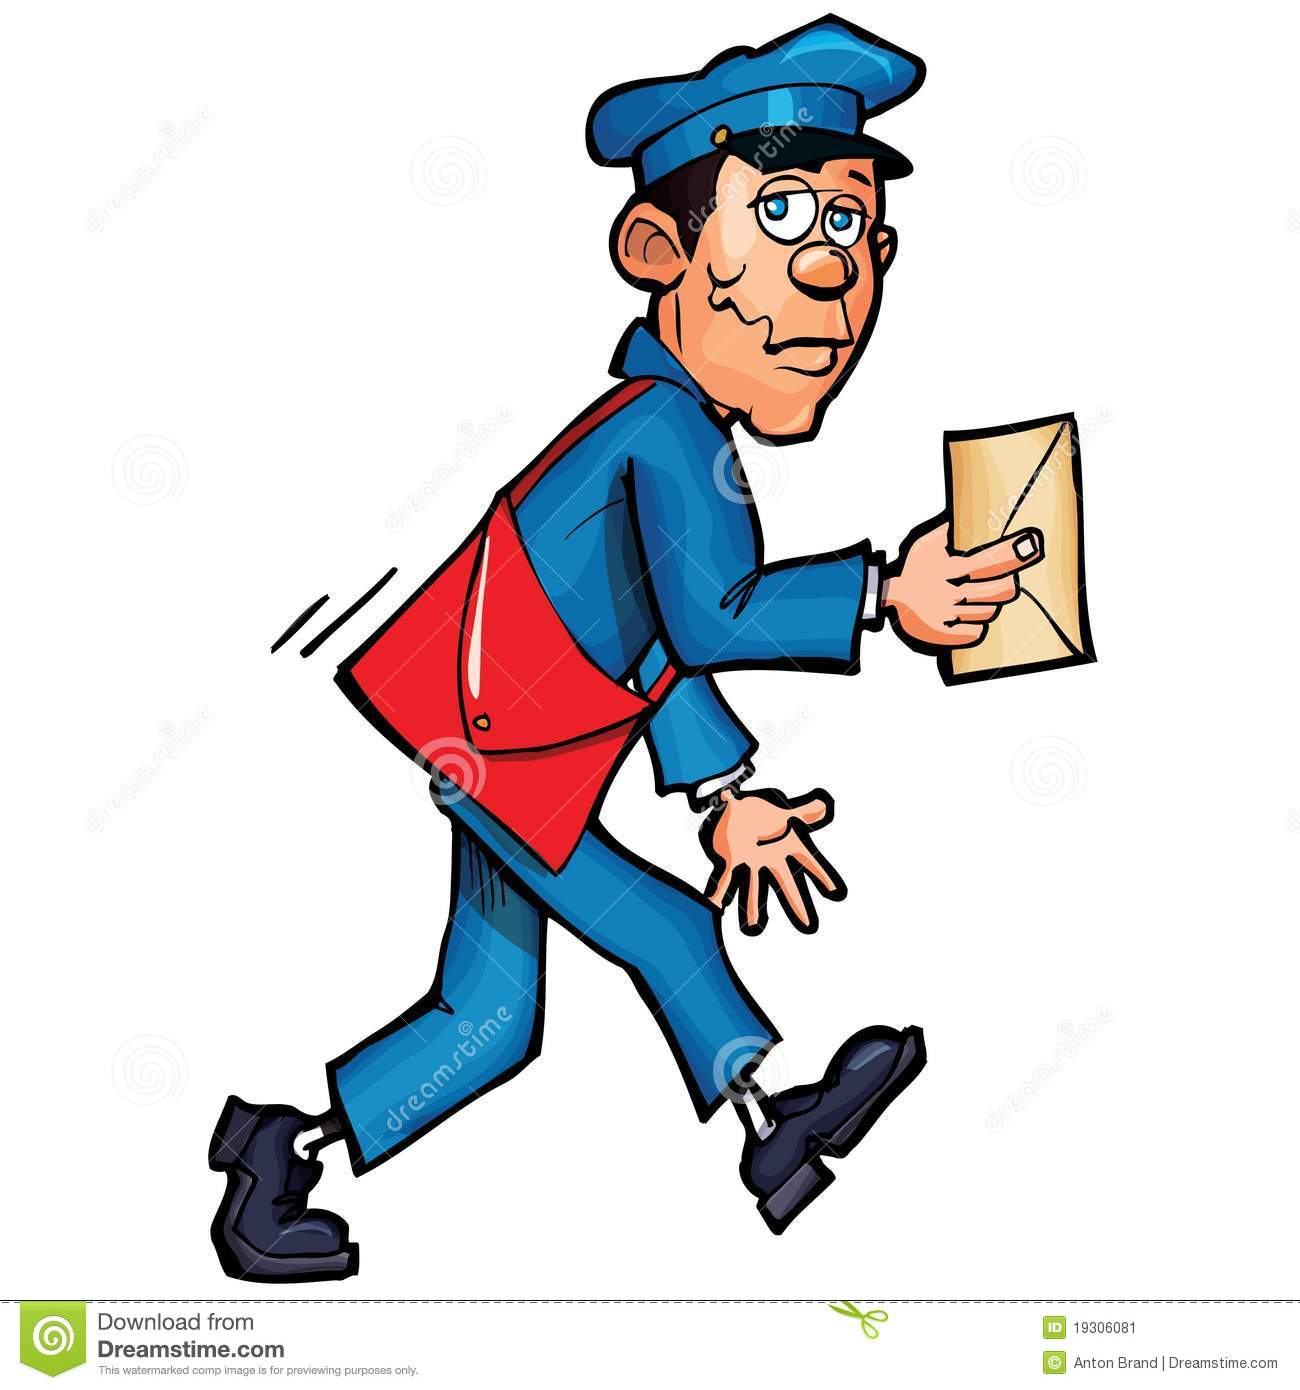 Facteur de dessin anim fournissant le courrier illustration de vecteur illustration du carte - Facteur dessin ...